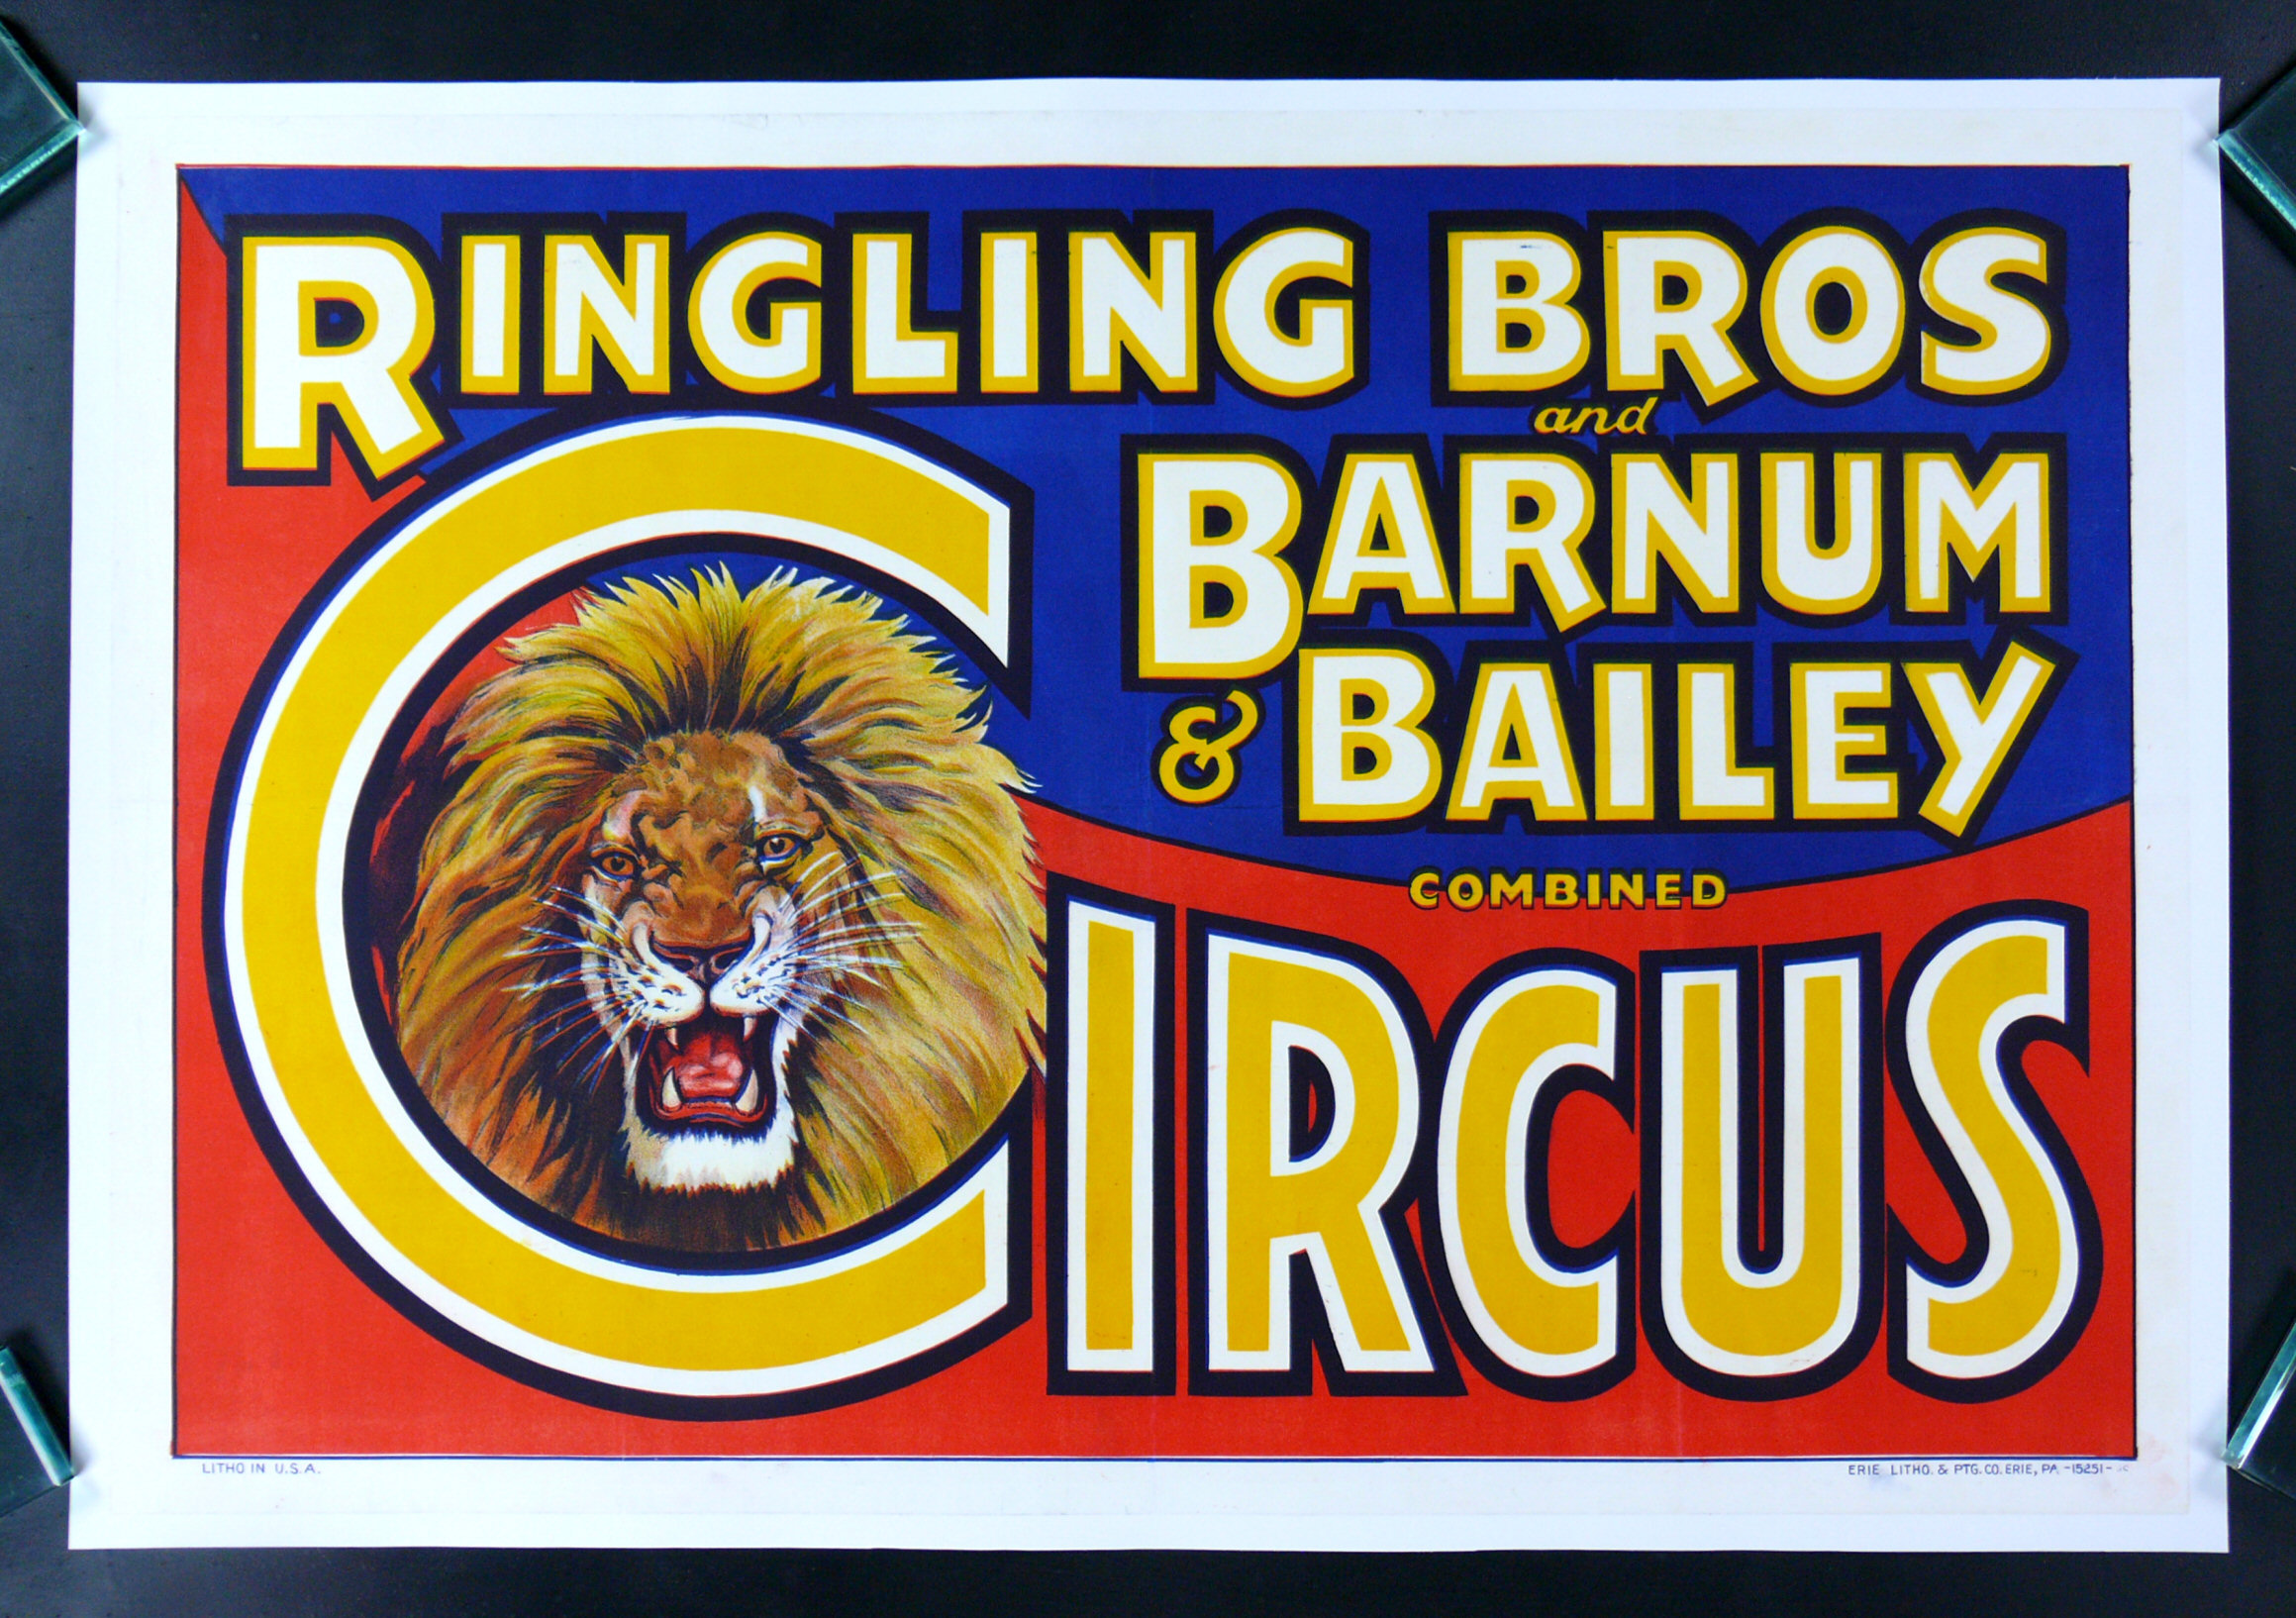 Poster design 1940 - Circus Posters Vintage Ringling Bros Barnum Bailey Circus Posters Cinemasterpieces